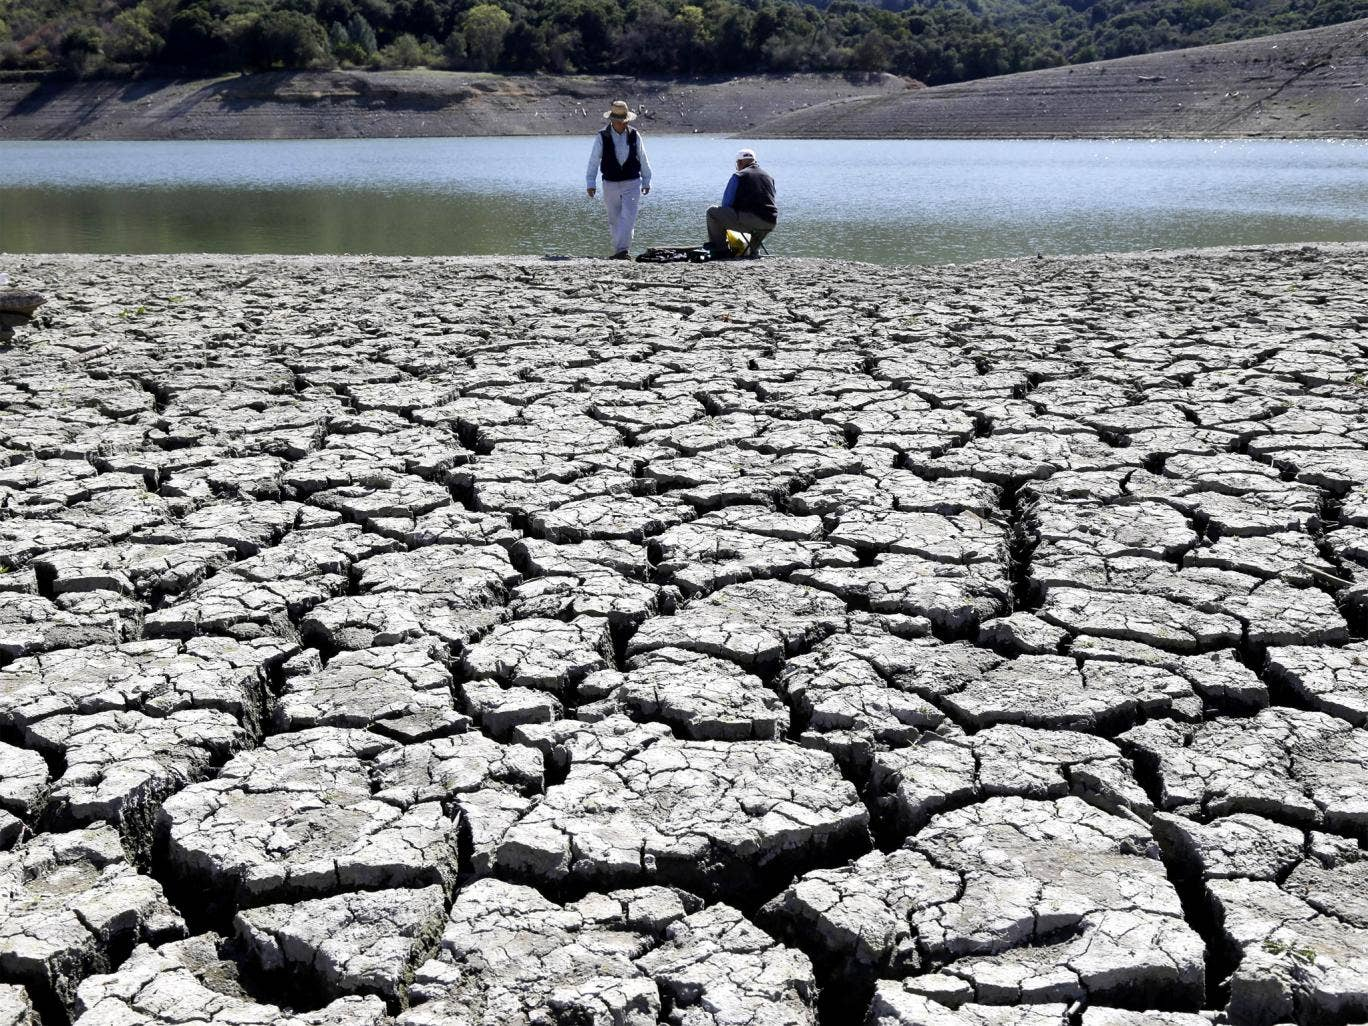 The dry bed of the Stevens Creek Reservoir in Cupertino, California cracks in the summer heat. The decade from 2001 to 2012 was the warmest on record in the United States